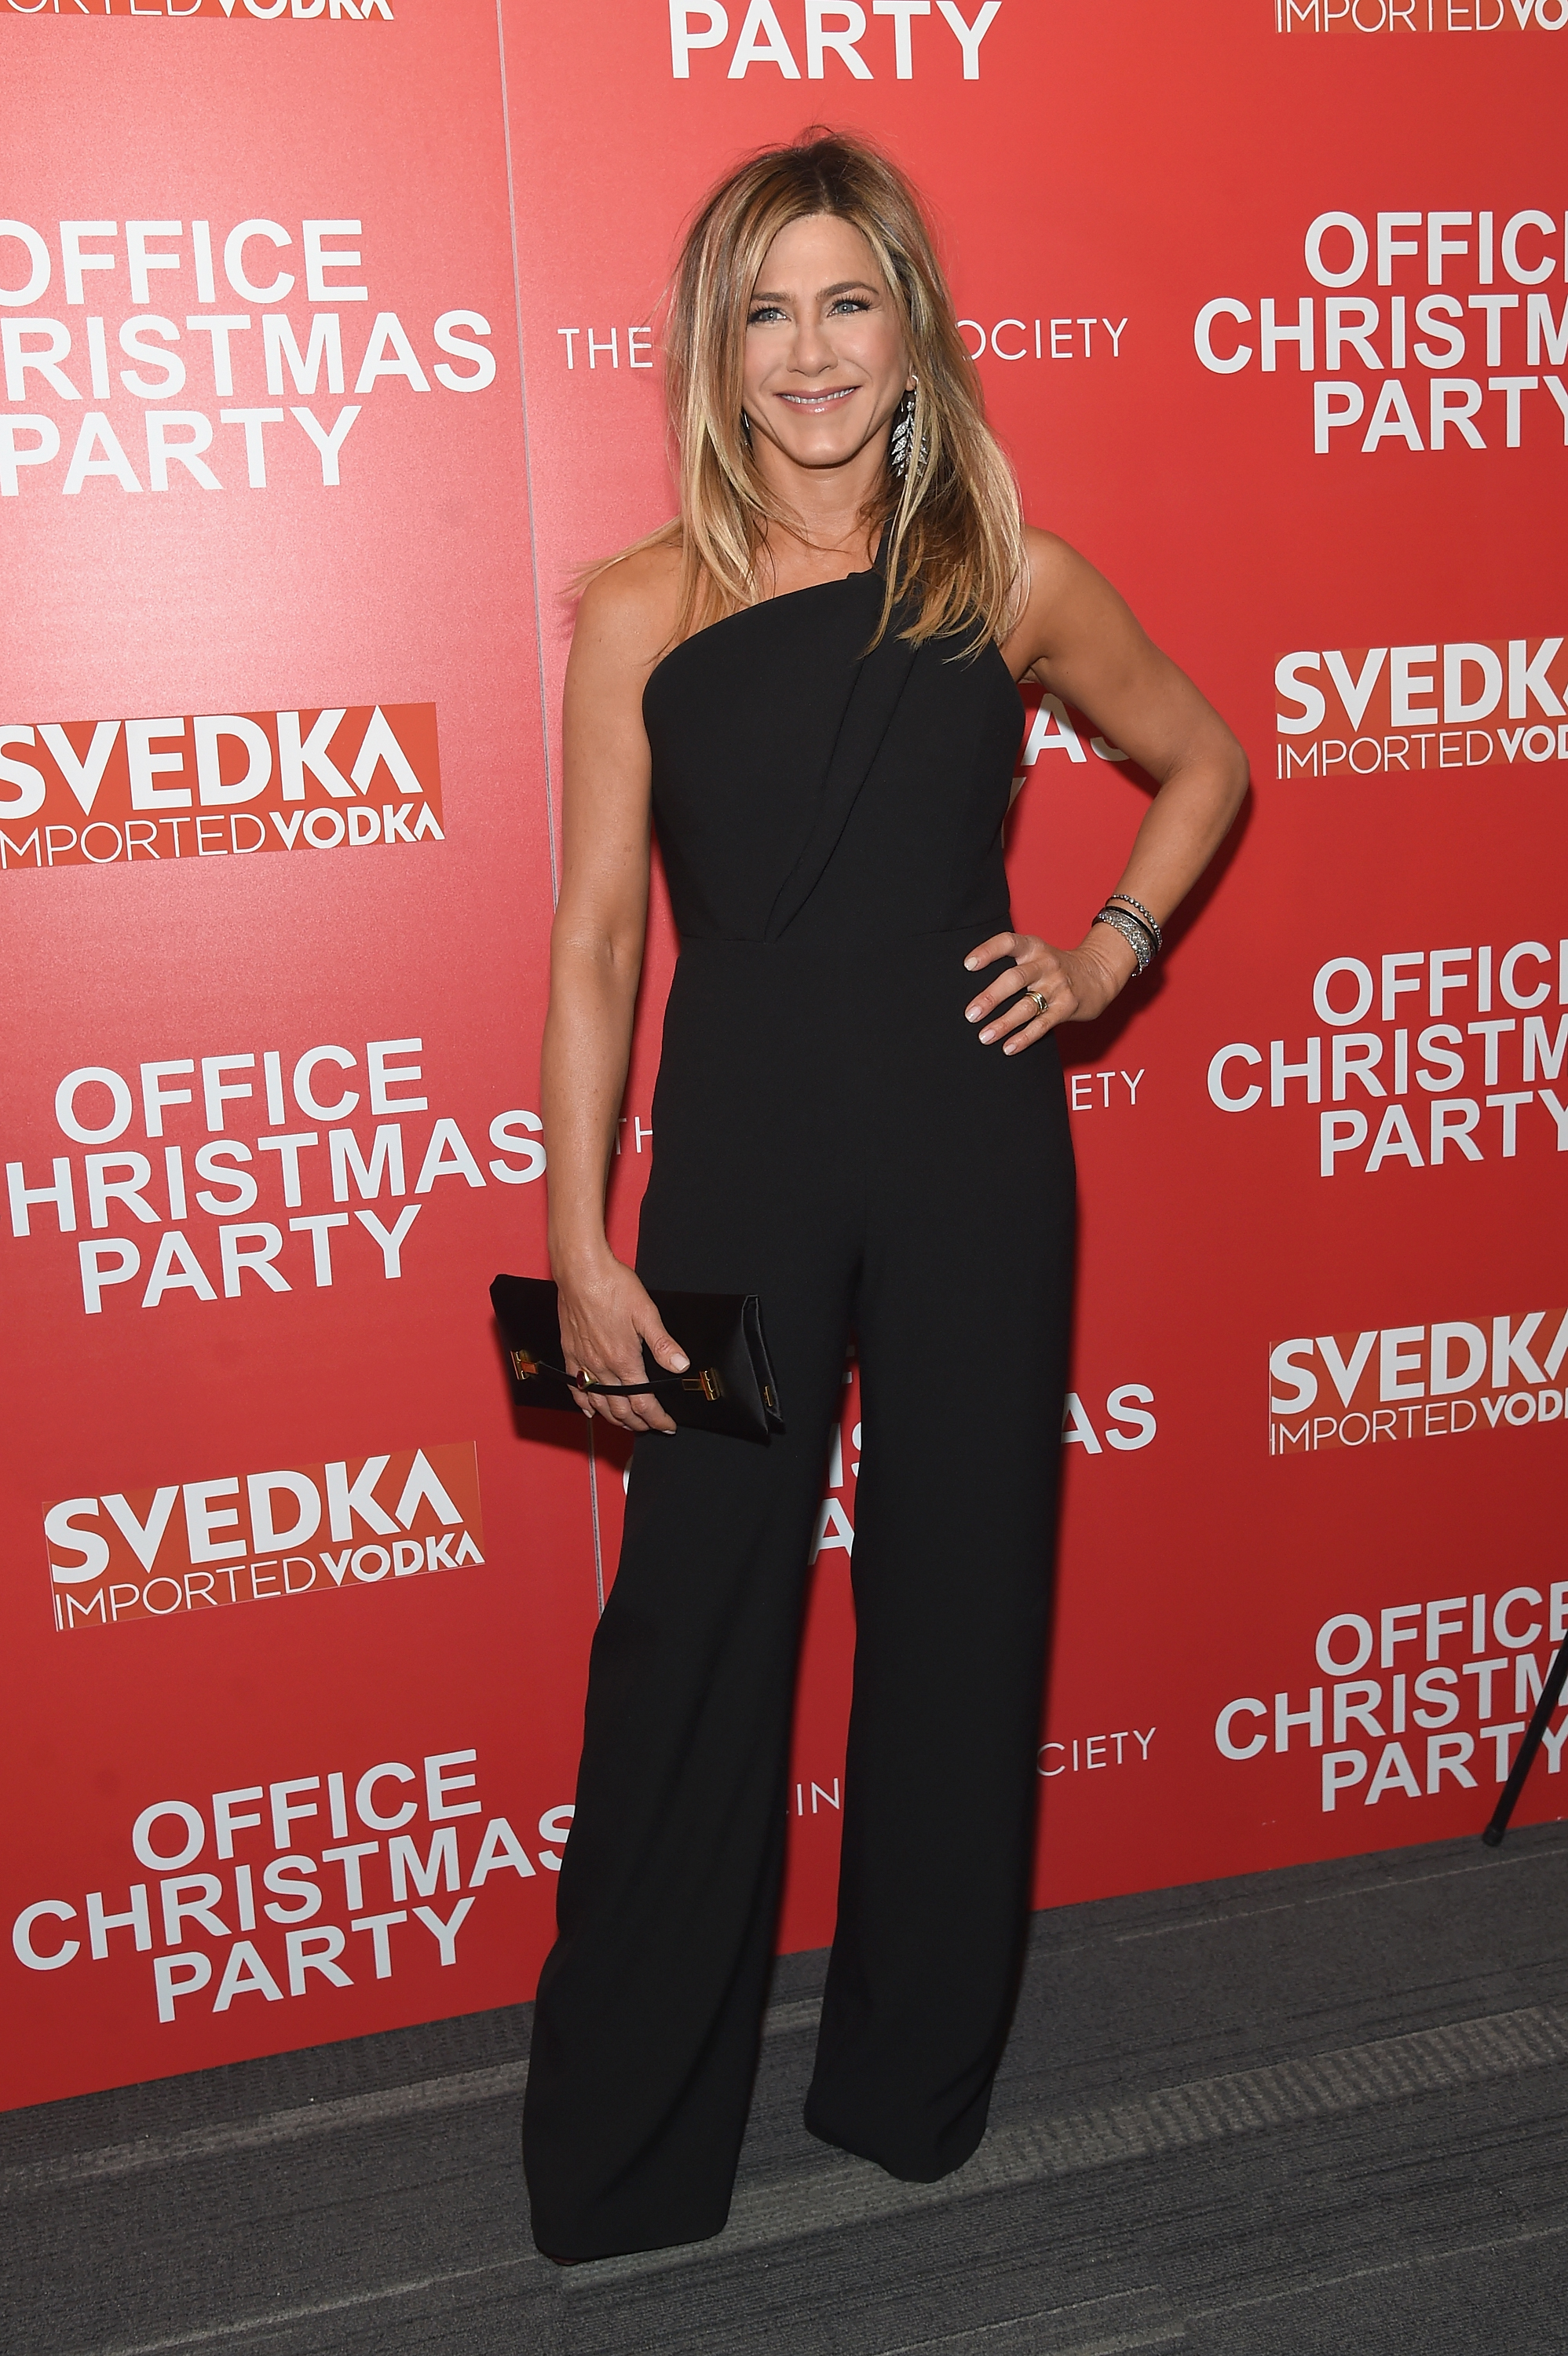 Jennifer-Aniston-attends-the-Paramount-Pictures-with-The-Cinema-Society-Svedka-host-a-screening-of-Office-Christmas-Party-at-Landmark-Sunshine-Cinema-on-December-5-2016-in-New-York-City